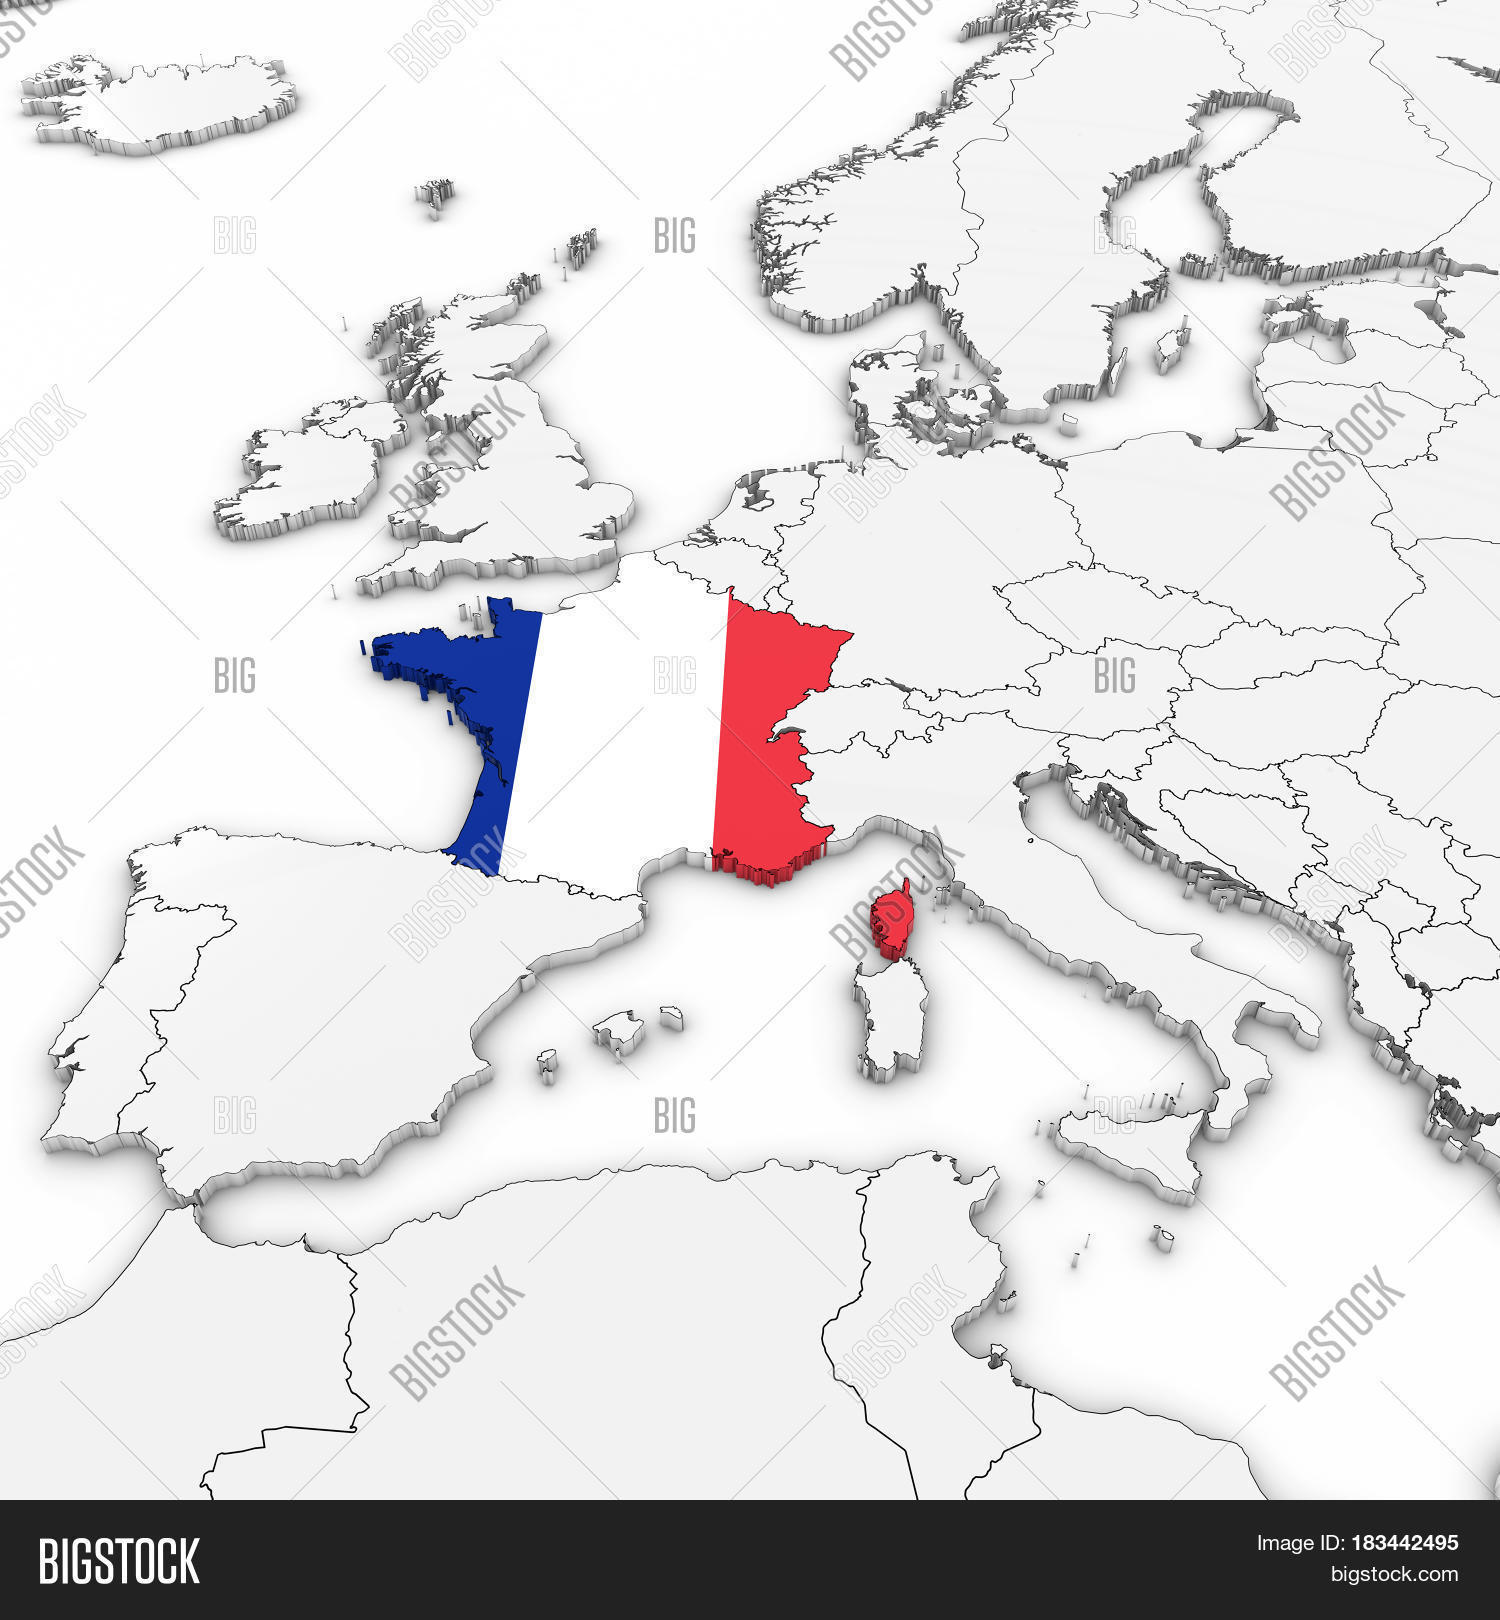 D Map France French Image Photo Free Trial Bigstock - Map of france in french